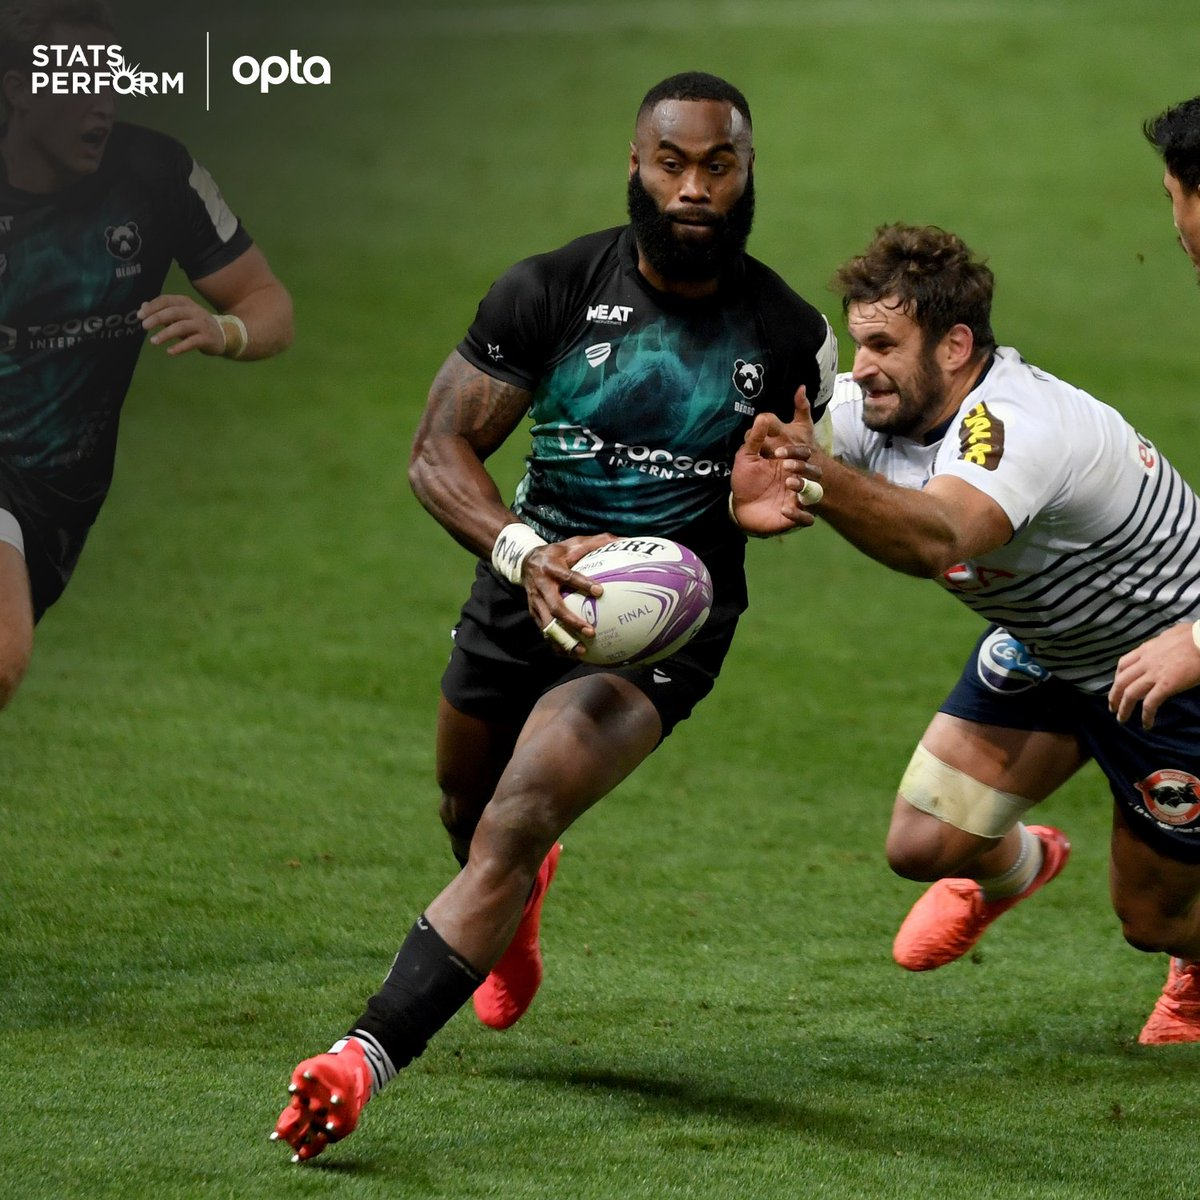 71 - Semi Radradra has made 71 carries in the @ERChallengeCup this season, the most of any back, including a competition-high 32 in the knockout stages; he's also assisted 5 tries, the most of any non-half back and the second most of any player overall (B Serin - 7). Recognition. https://t.co/3bgzPDu3gd